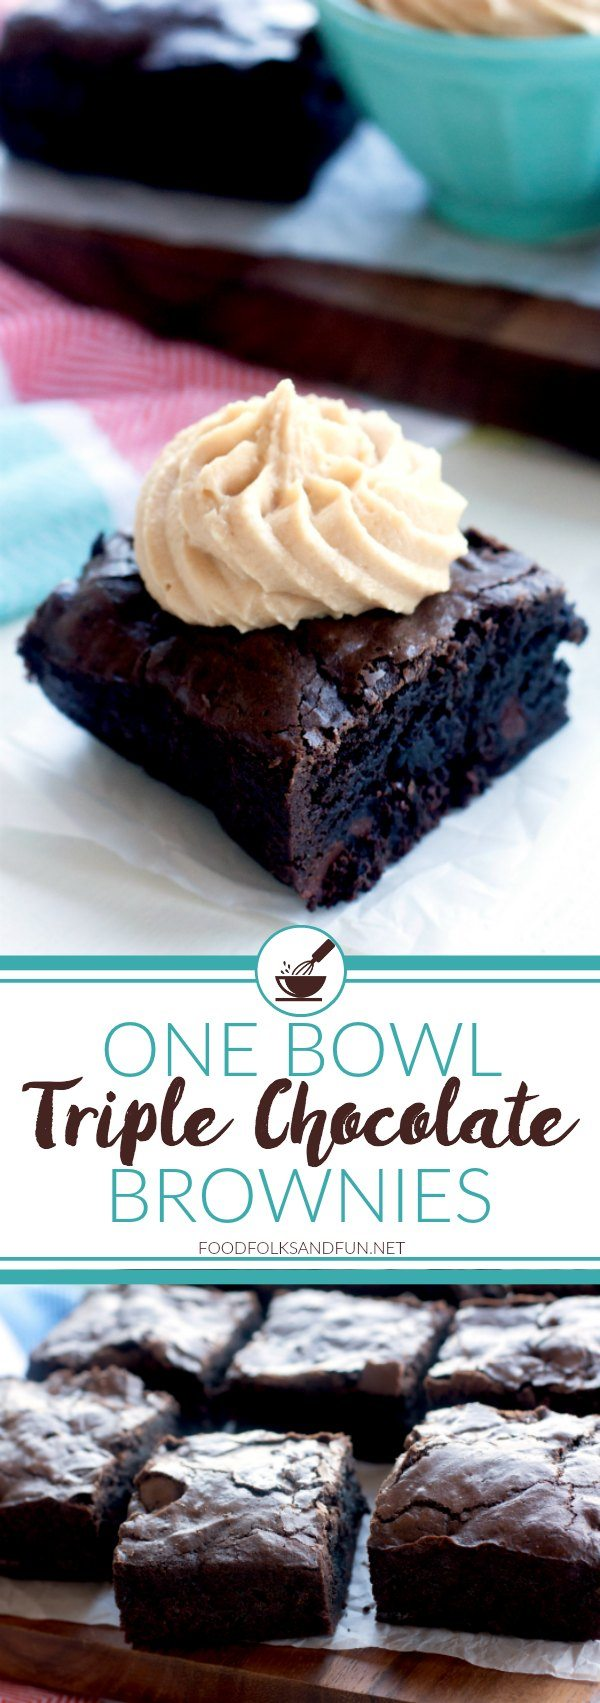 These Triple Chocolate One Bowl Brownies are rich, fudgy, and so incredibly easy to make! One bowl is all it takes to make this kitchen staple!